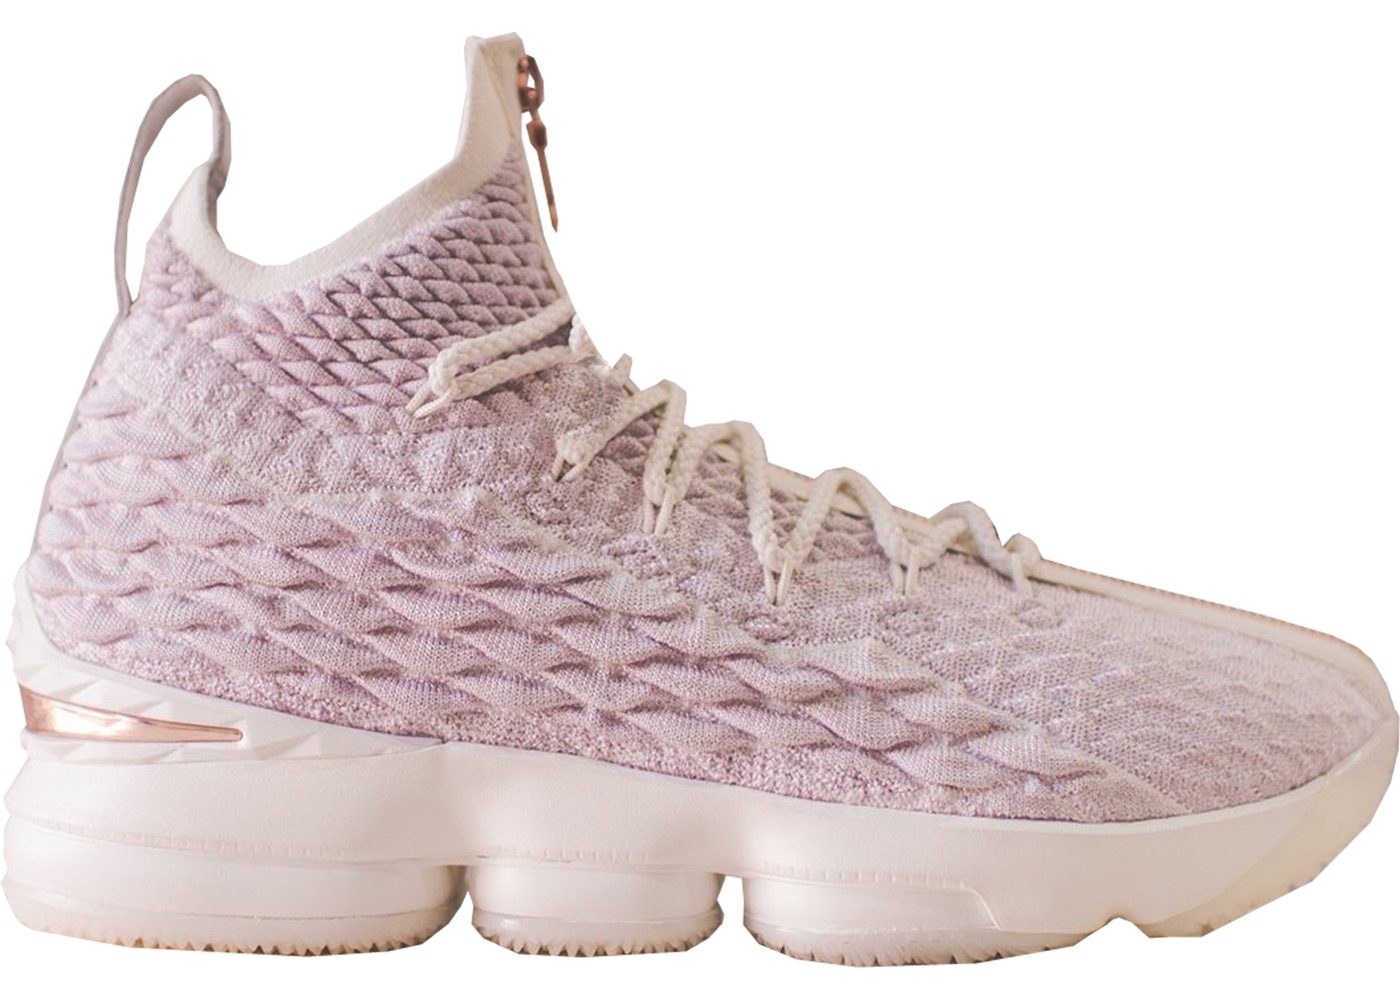 lebron 15 lakers icon edition